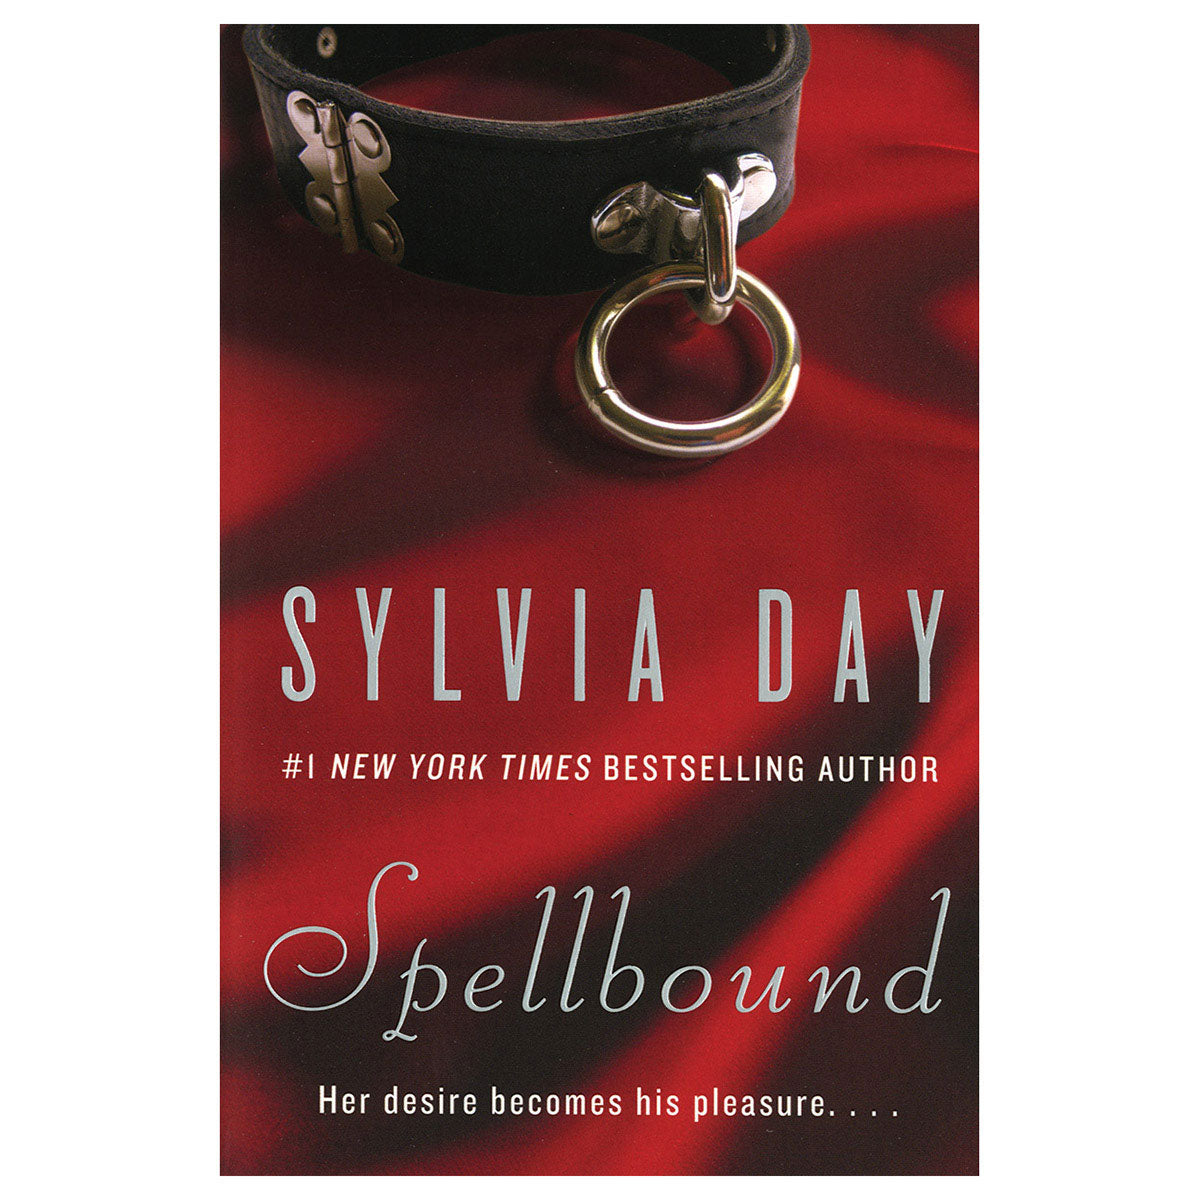 Spellbound by Silvia Day